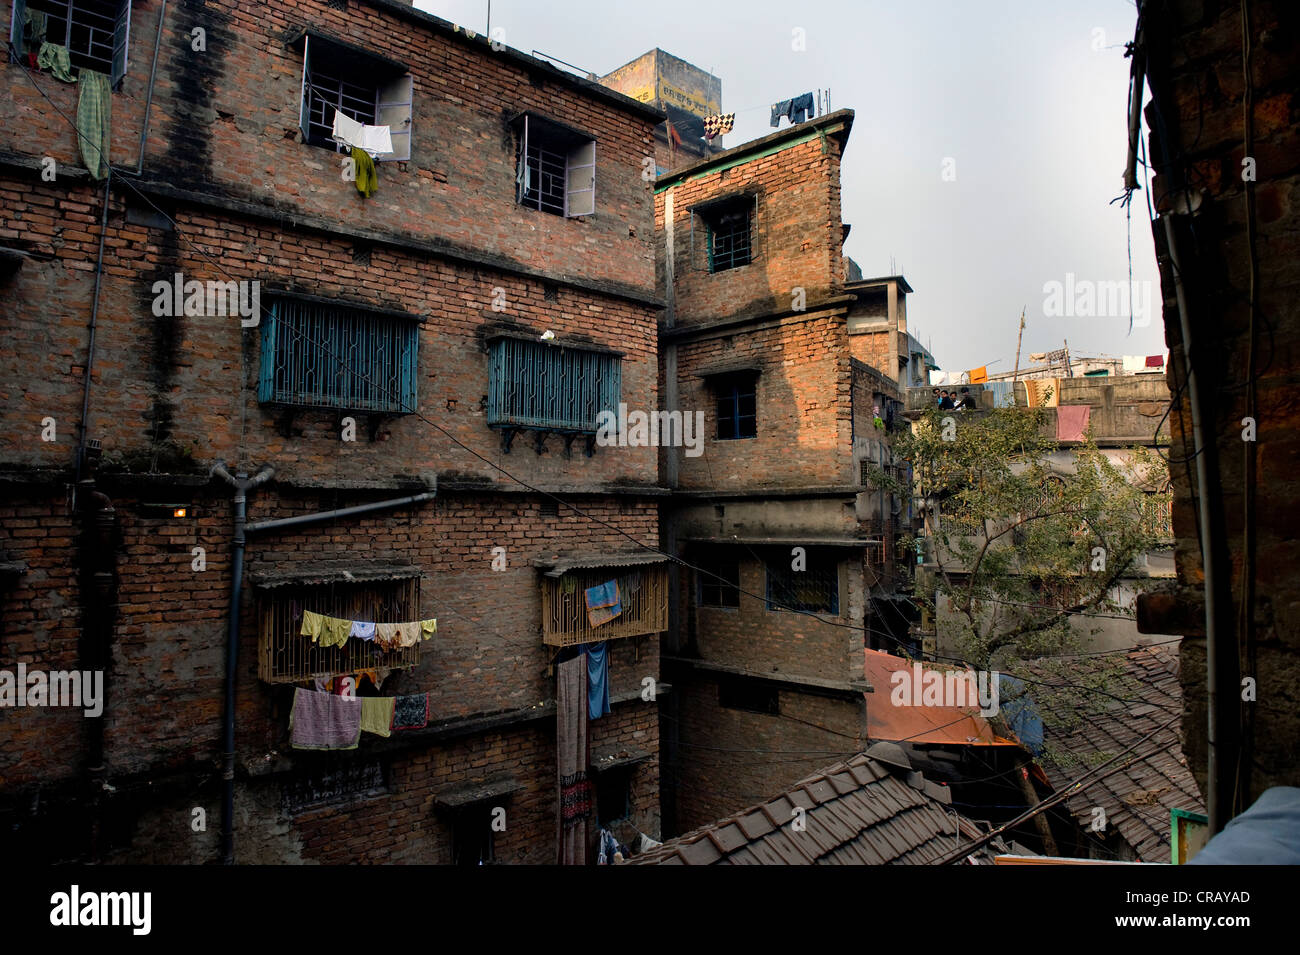 Immeuble décrépit, district de Shibpur, Howrah, Kolkata, Bengale occidental, Inde, Asie Photo Stock